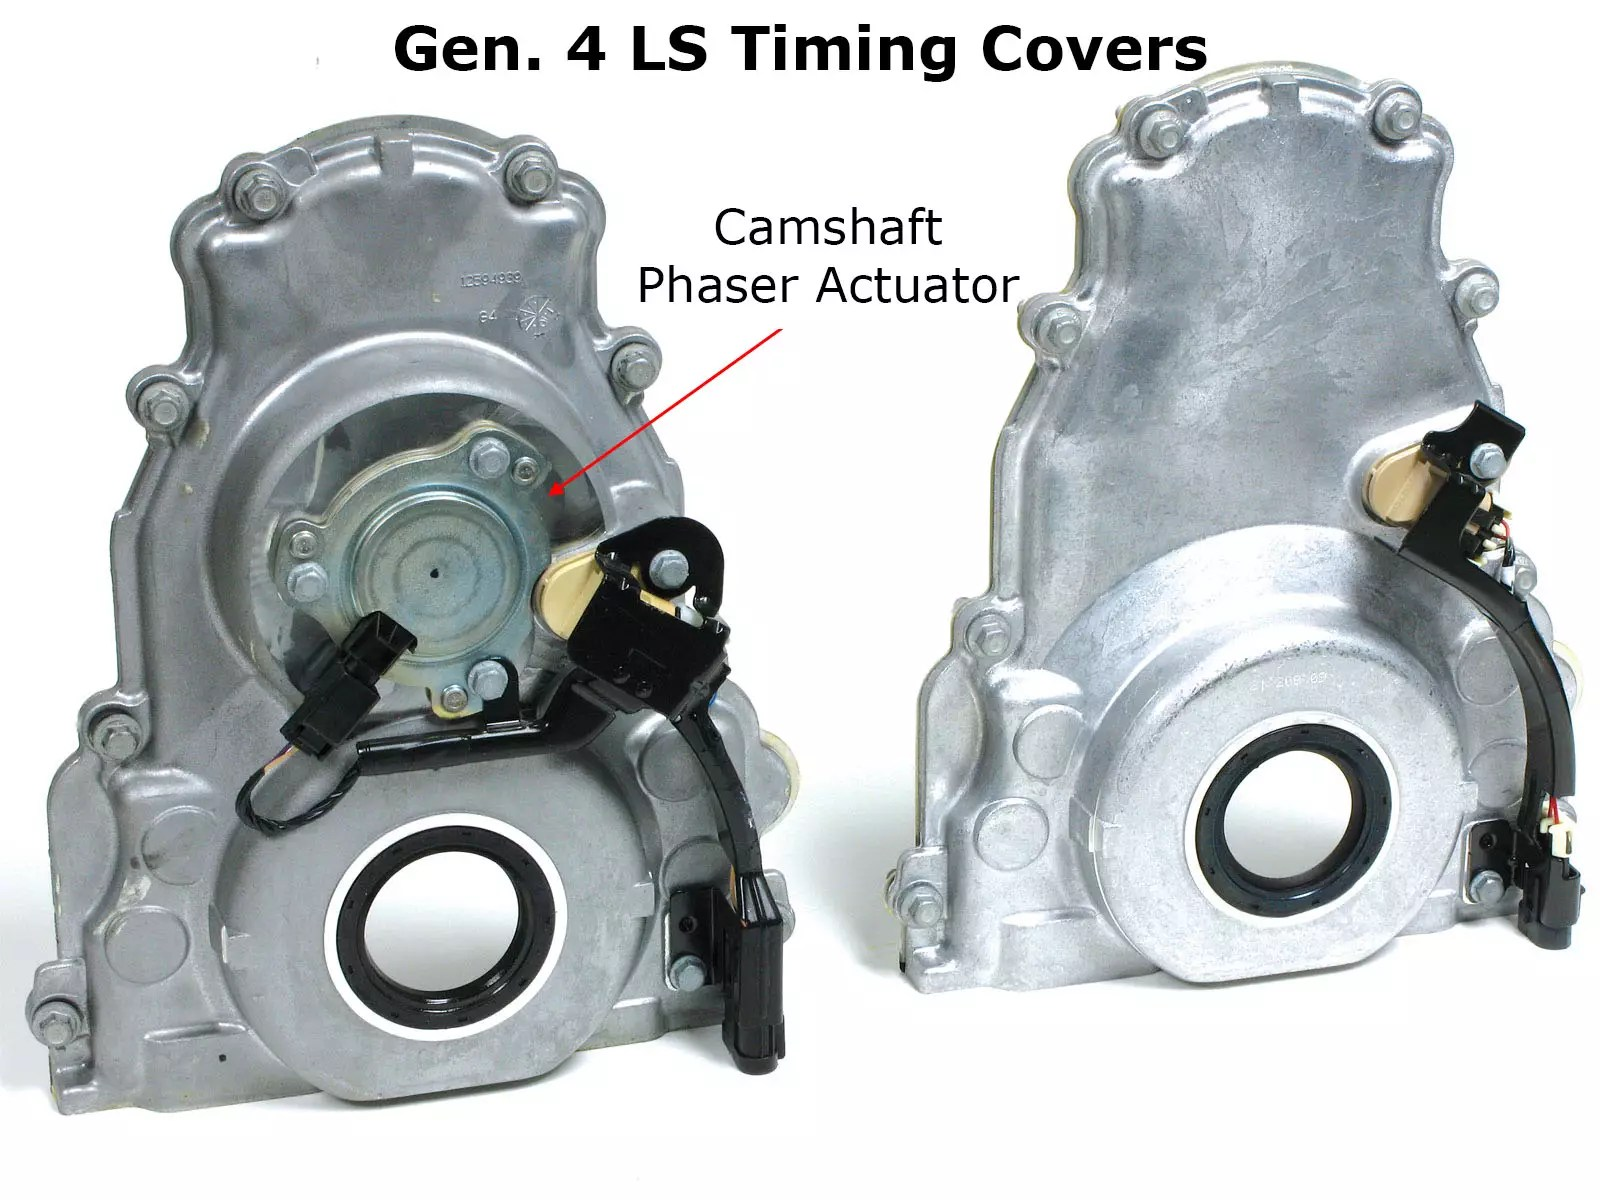 hight resolution of ls gen 4 timing covers vvt